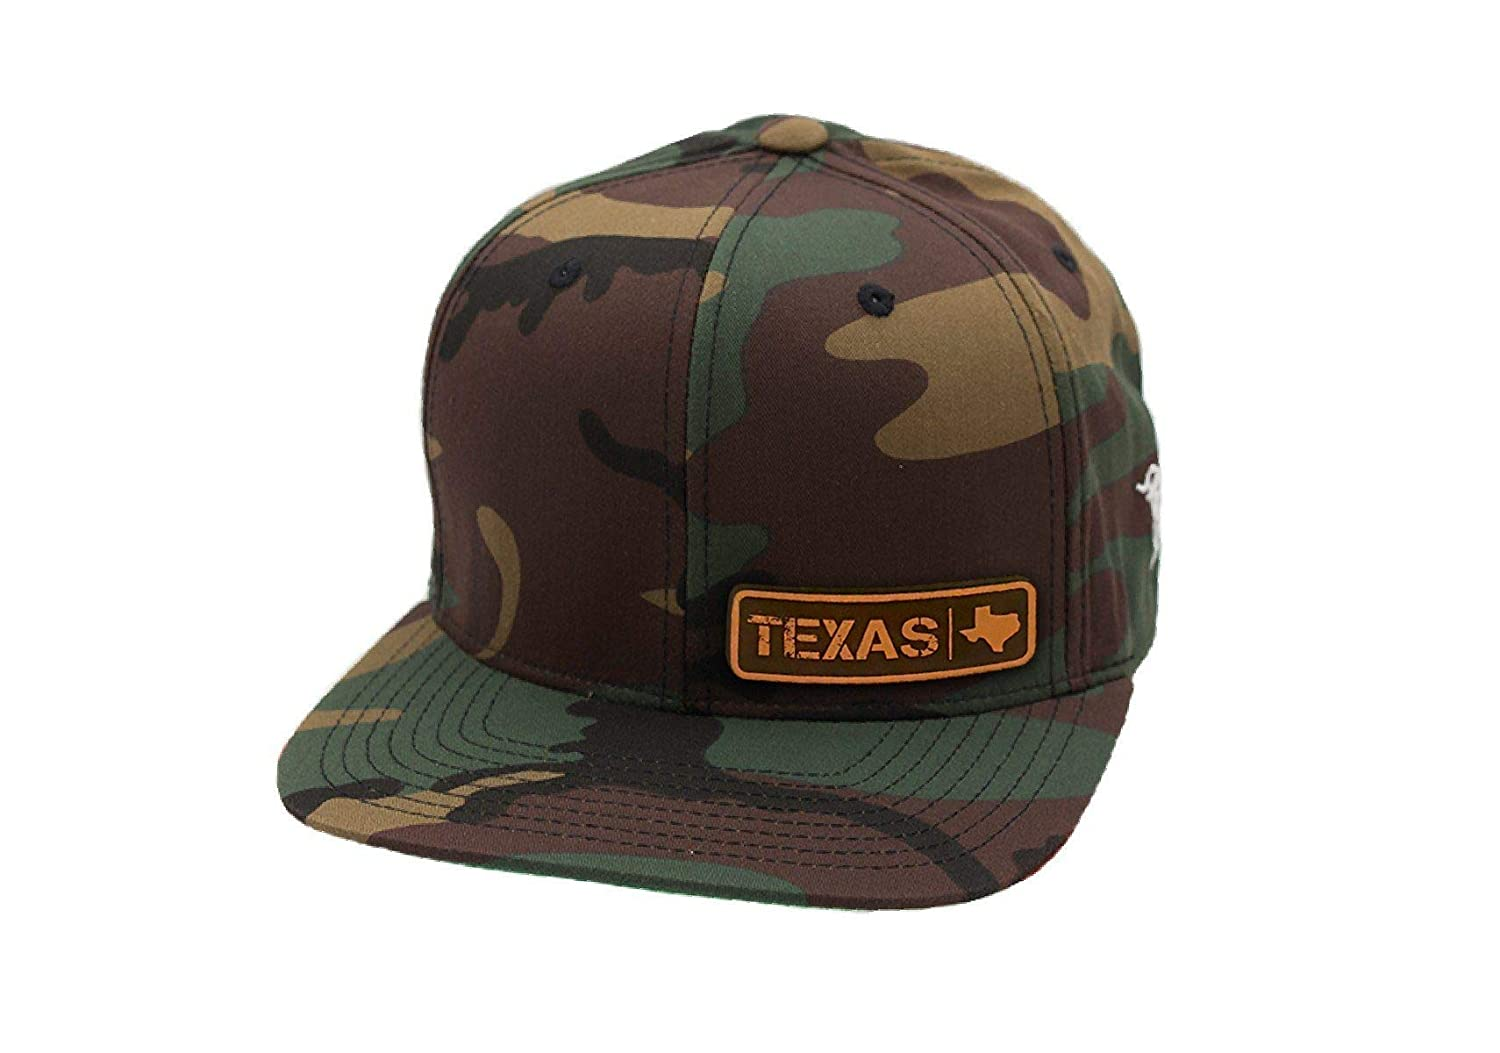 7b672e7ecf1 Branded Bills  Texas Native  Leather Patch Snapback Hat - OSFA Black at  Amazon Men s Clothing store